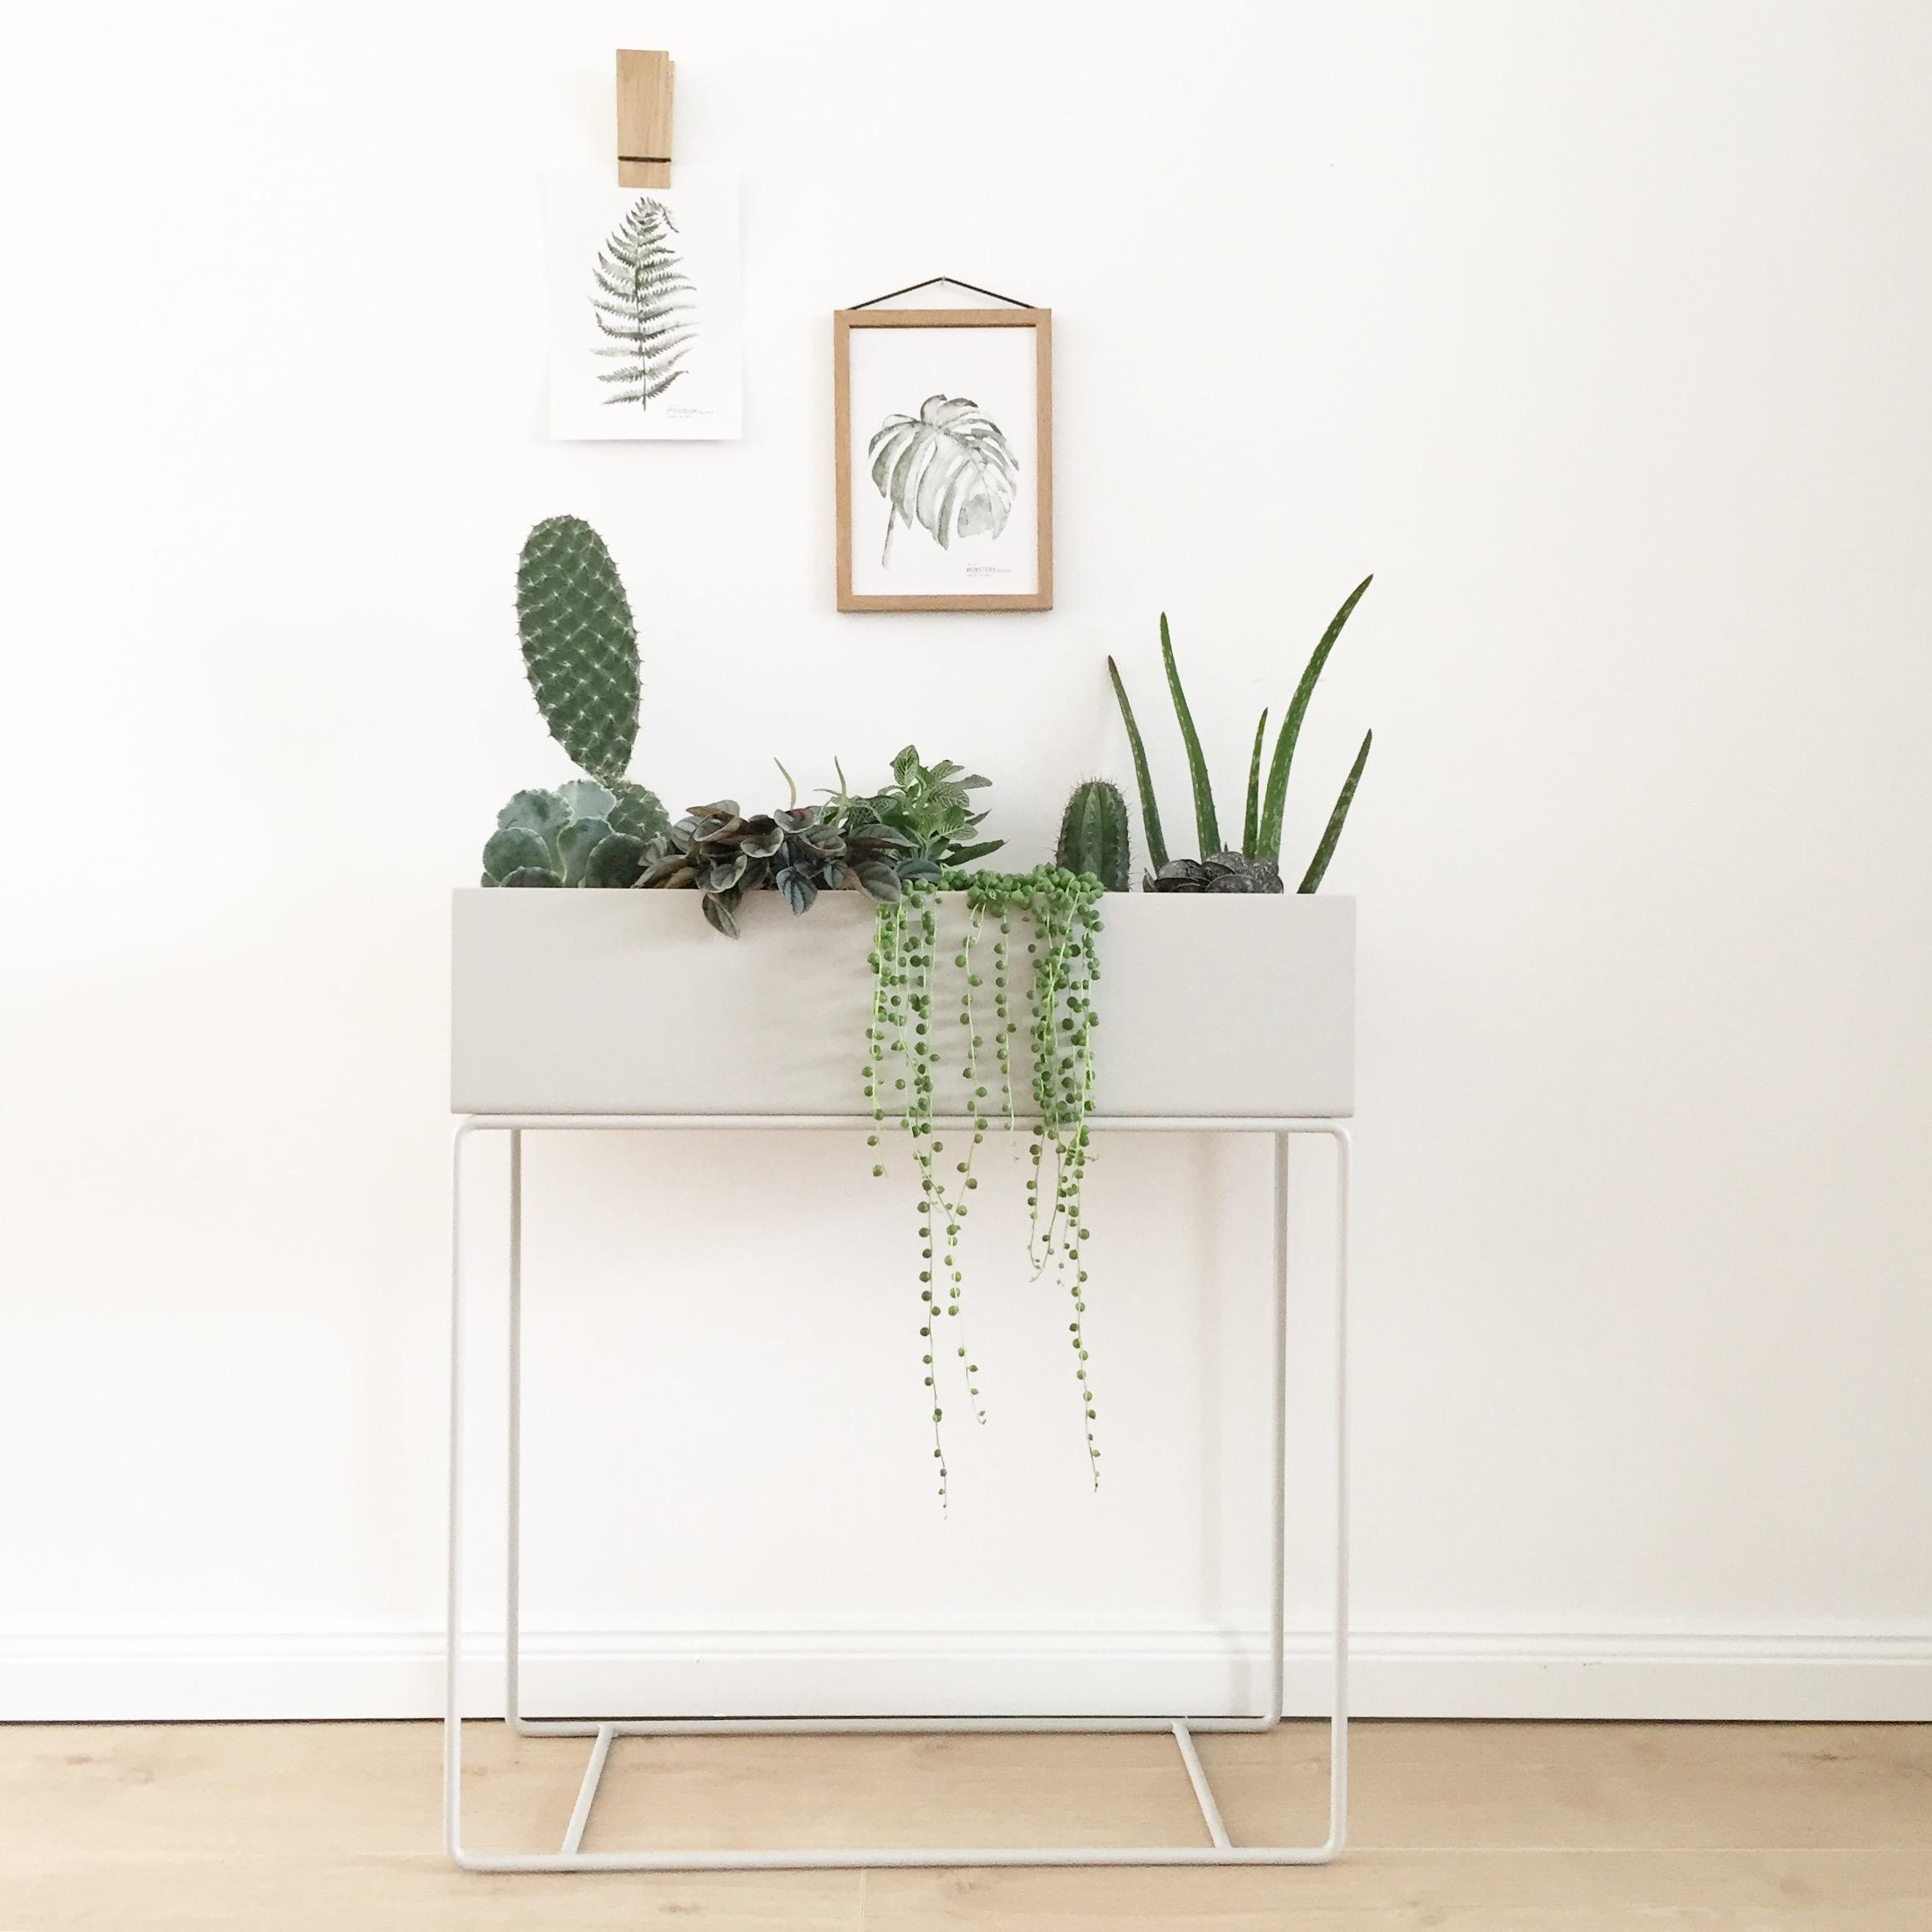 Plantgang ♡ #plantgang #planzbox #fermliving #urbanjungle #wohneningrün #scandi